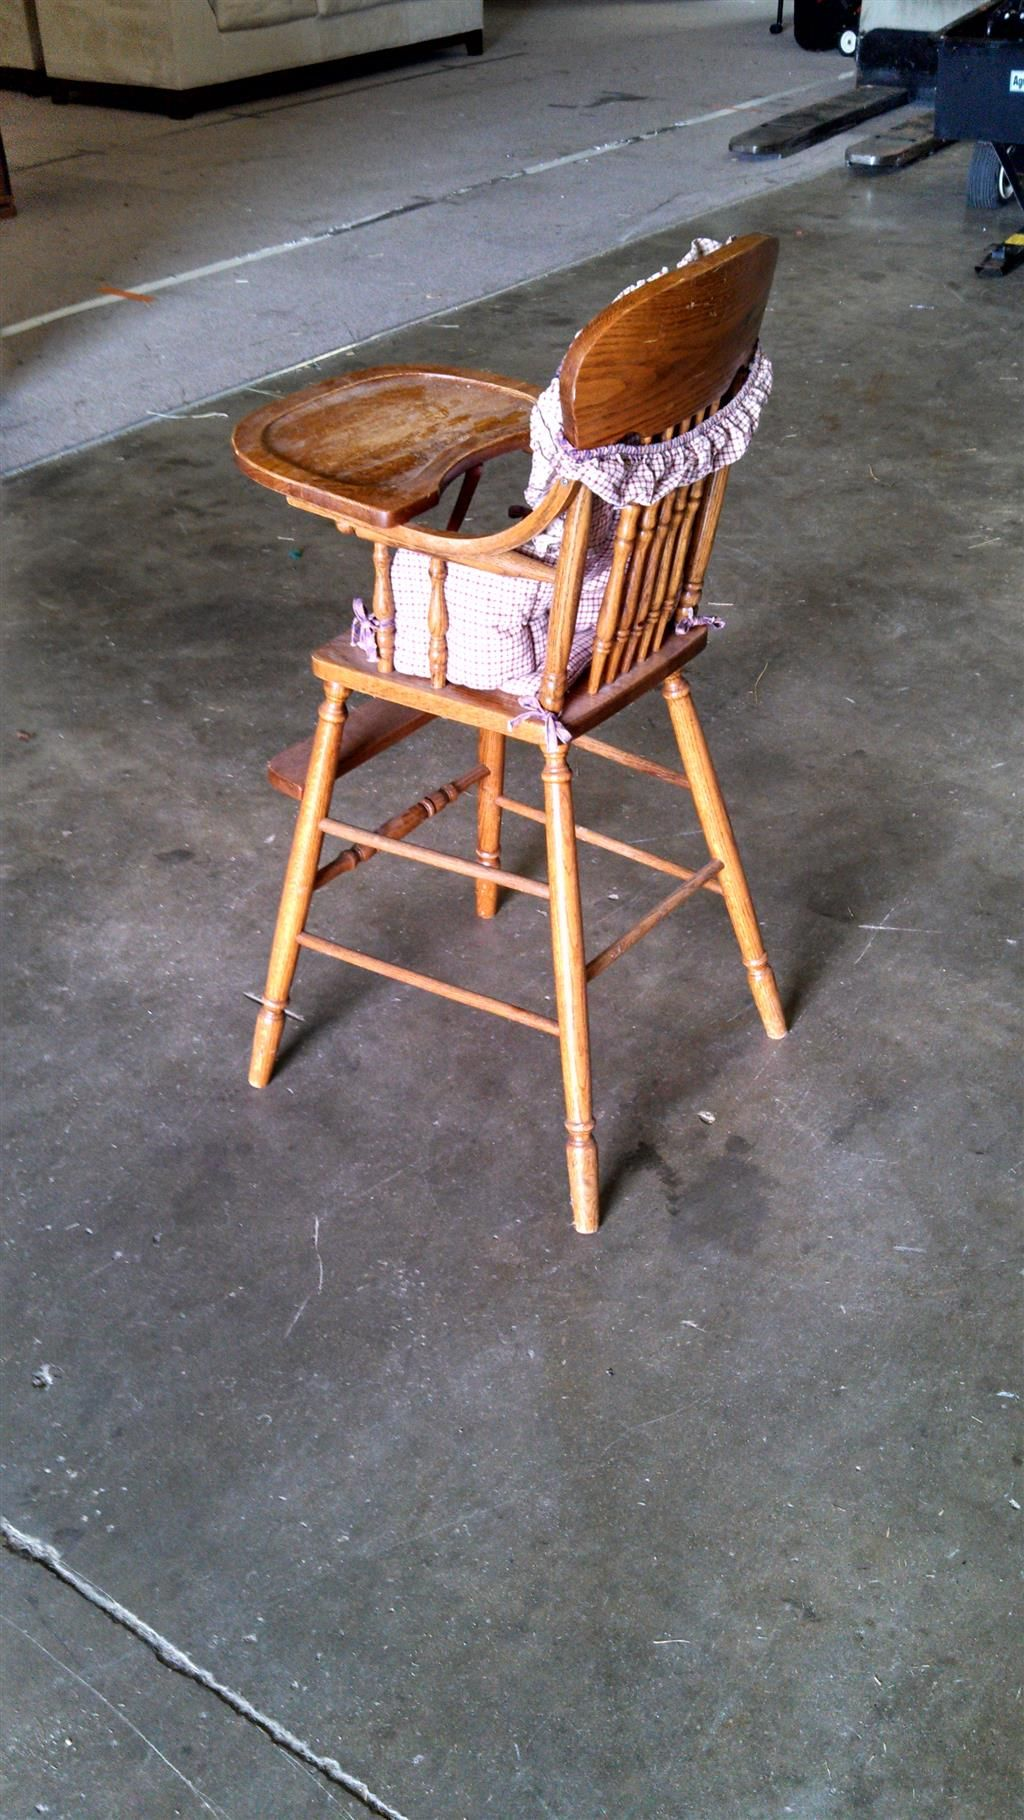 Antique Wooden High Chair With Tray - Antique Wooden High Chair With Tray Auction Items Pinterest